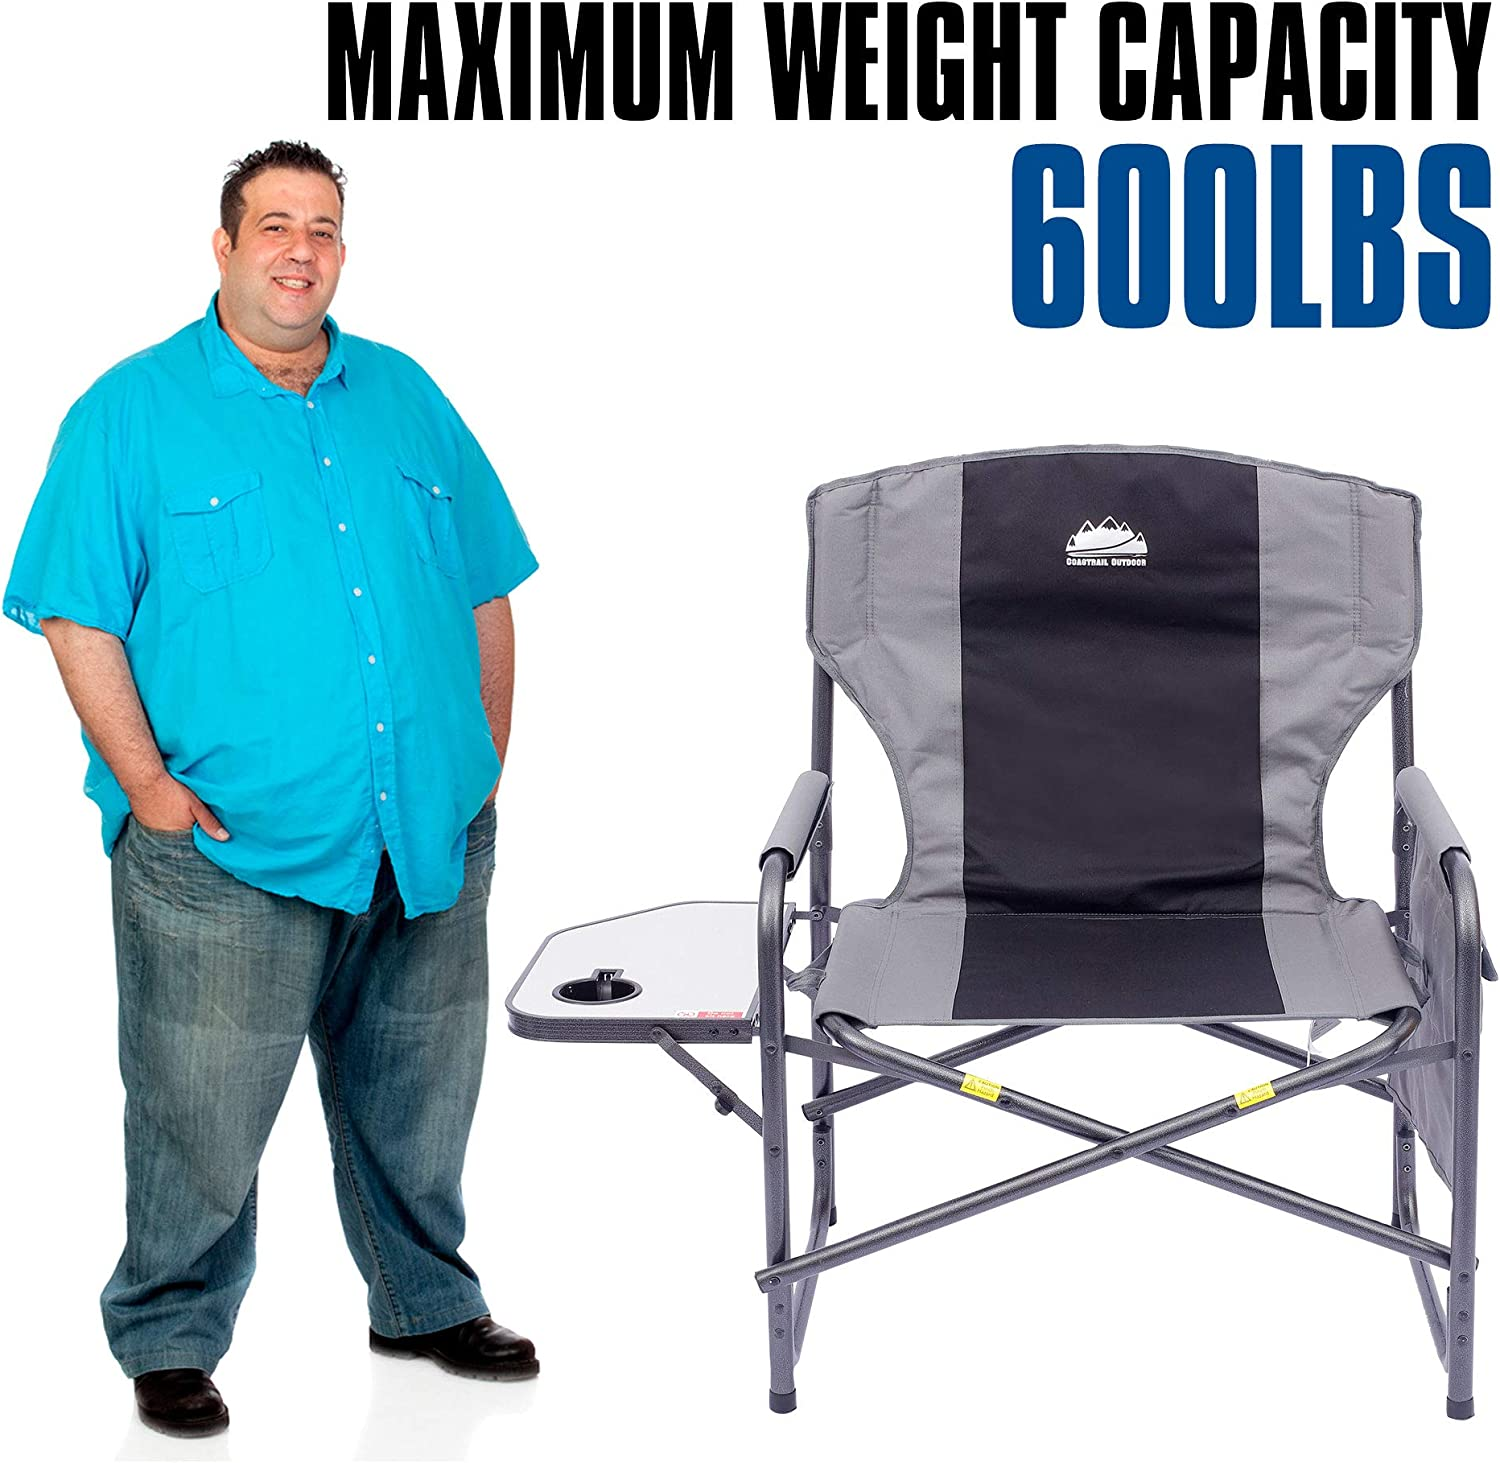 Heavy Duty for Camping XXL Full Back Padded Camp Chair with Table /& Storage Coastrail Outdoor Oversized Director Chair 600lbs Lawn Patio 28 Wide